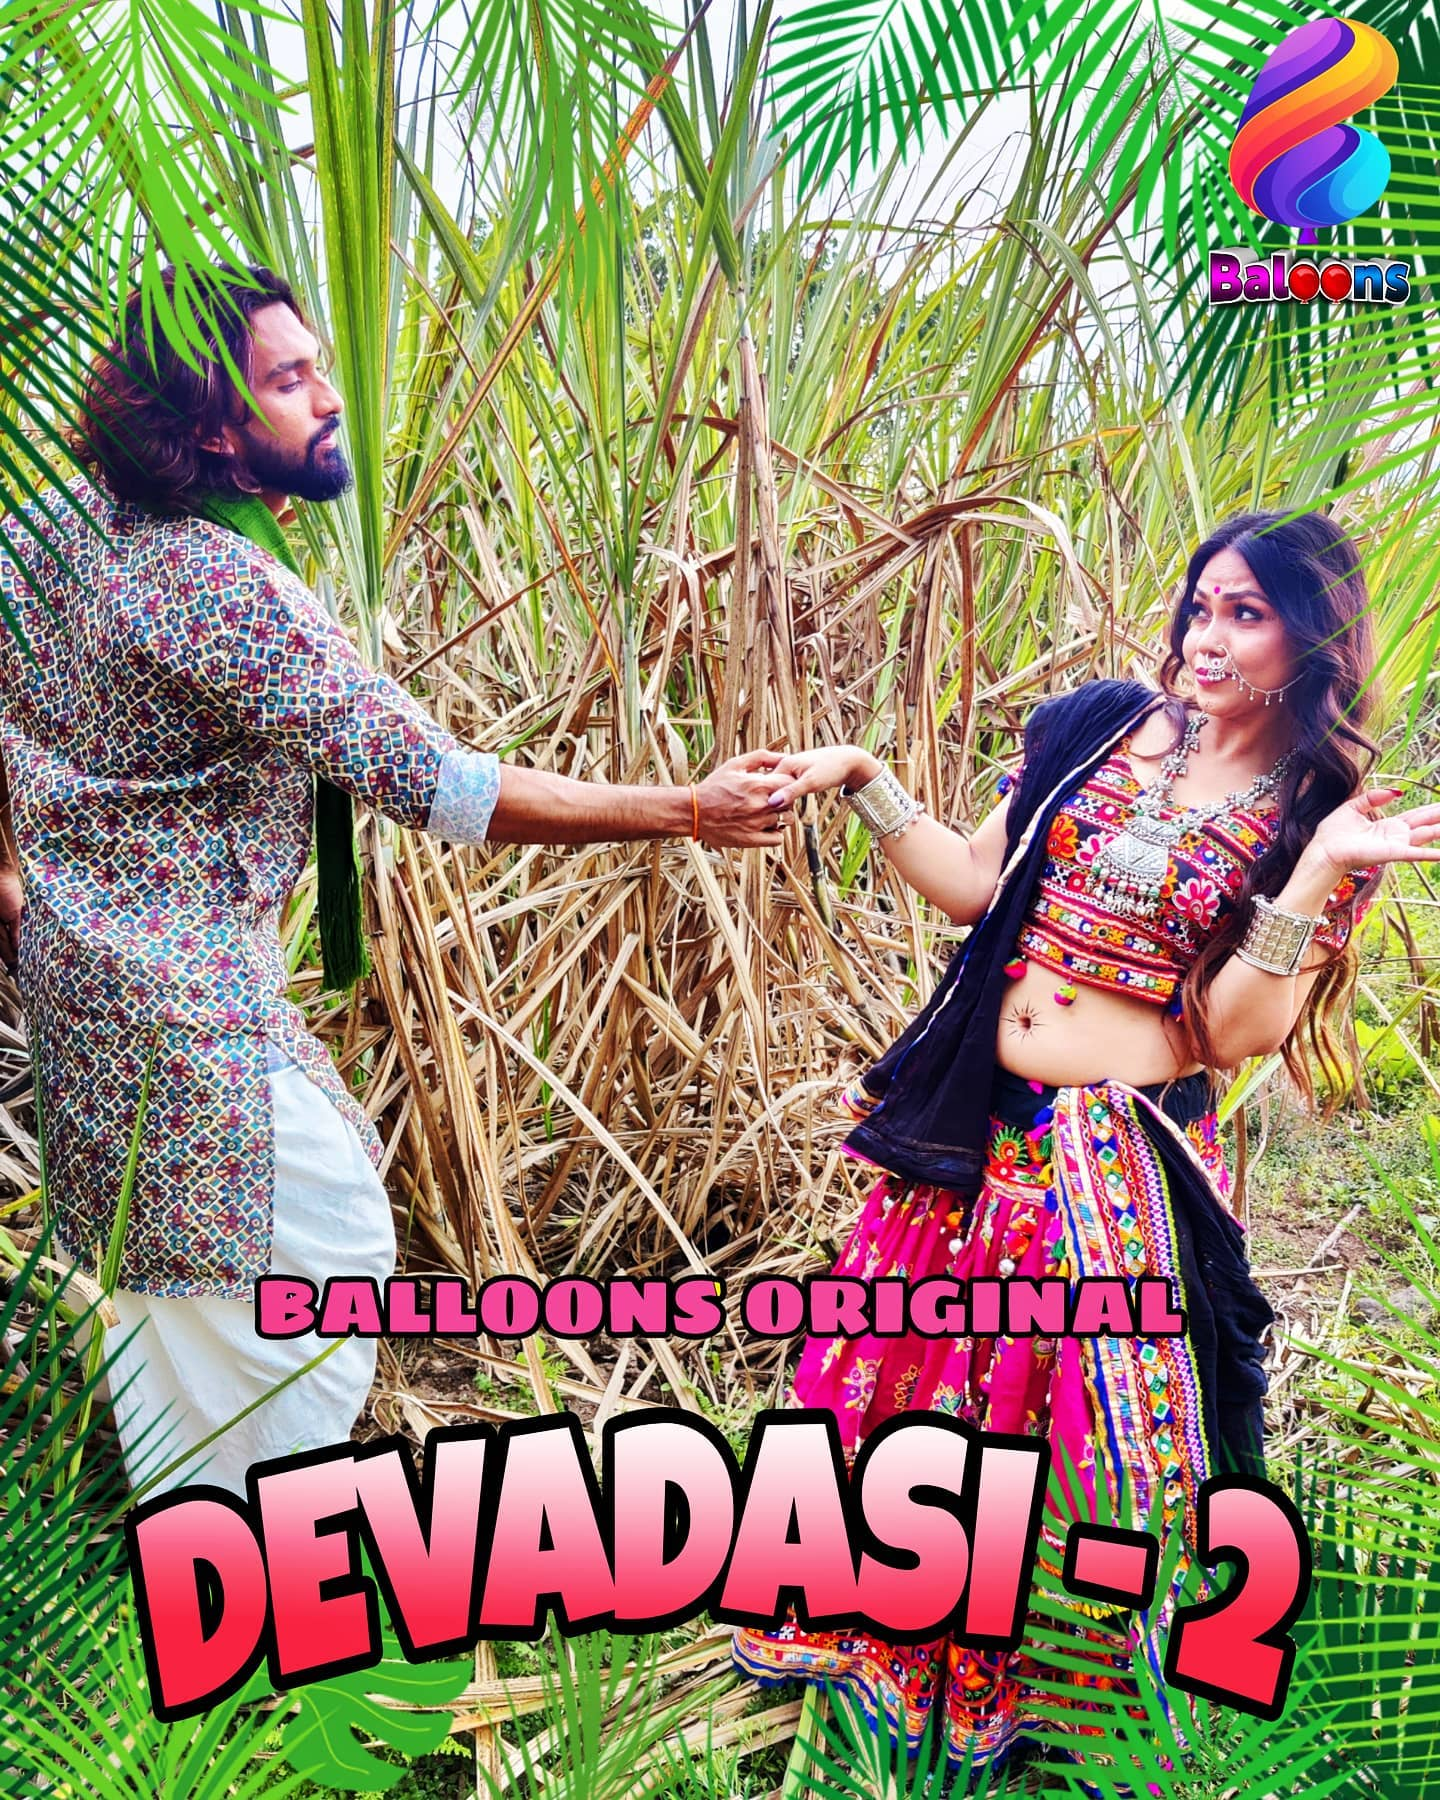 18+ Devadasi 2021 S02E01 Hindi Balloons Original Web Series 720p HDRip 200MB Download